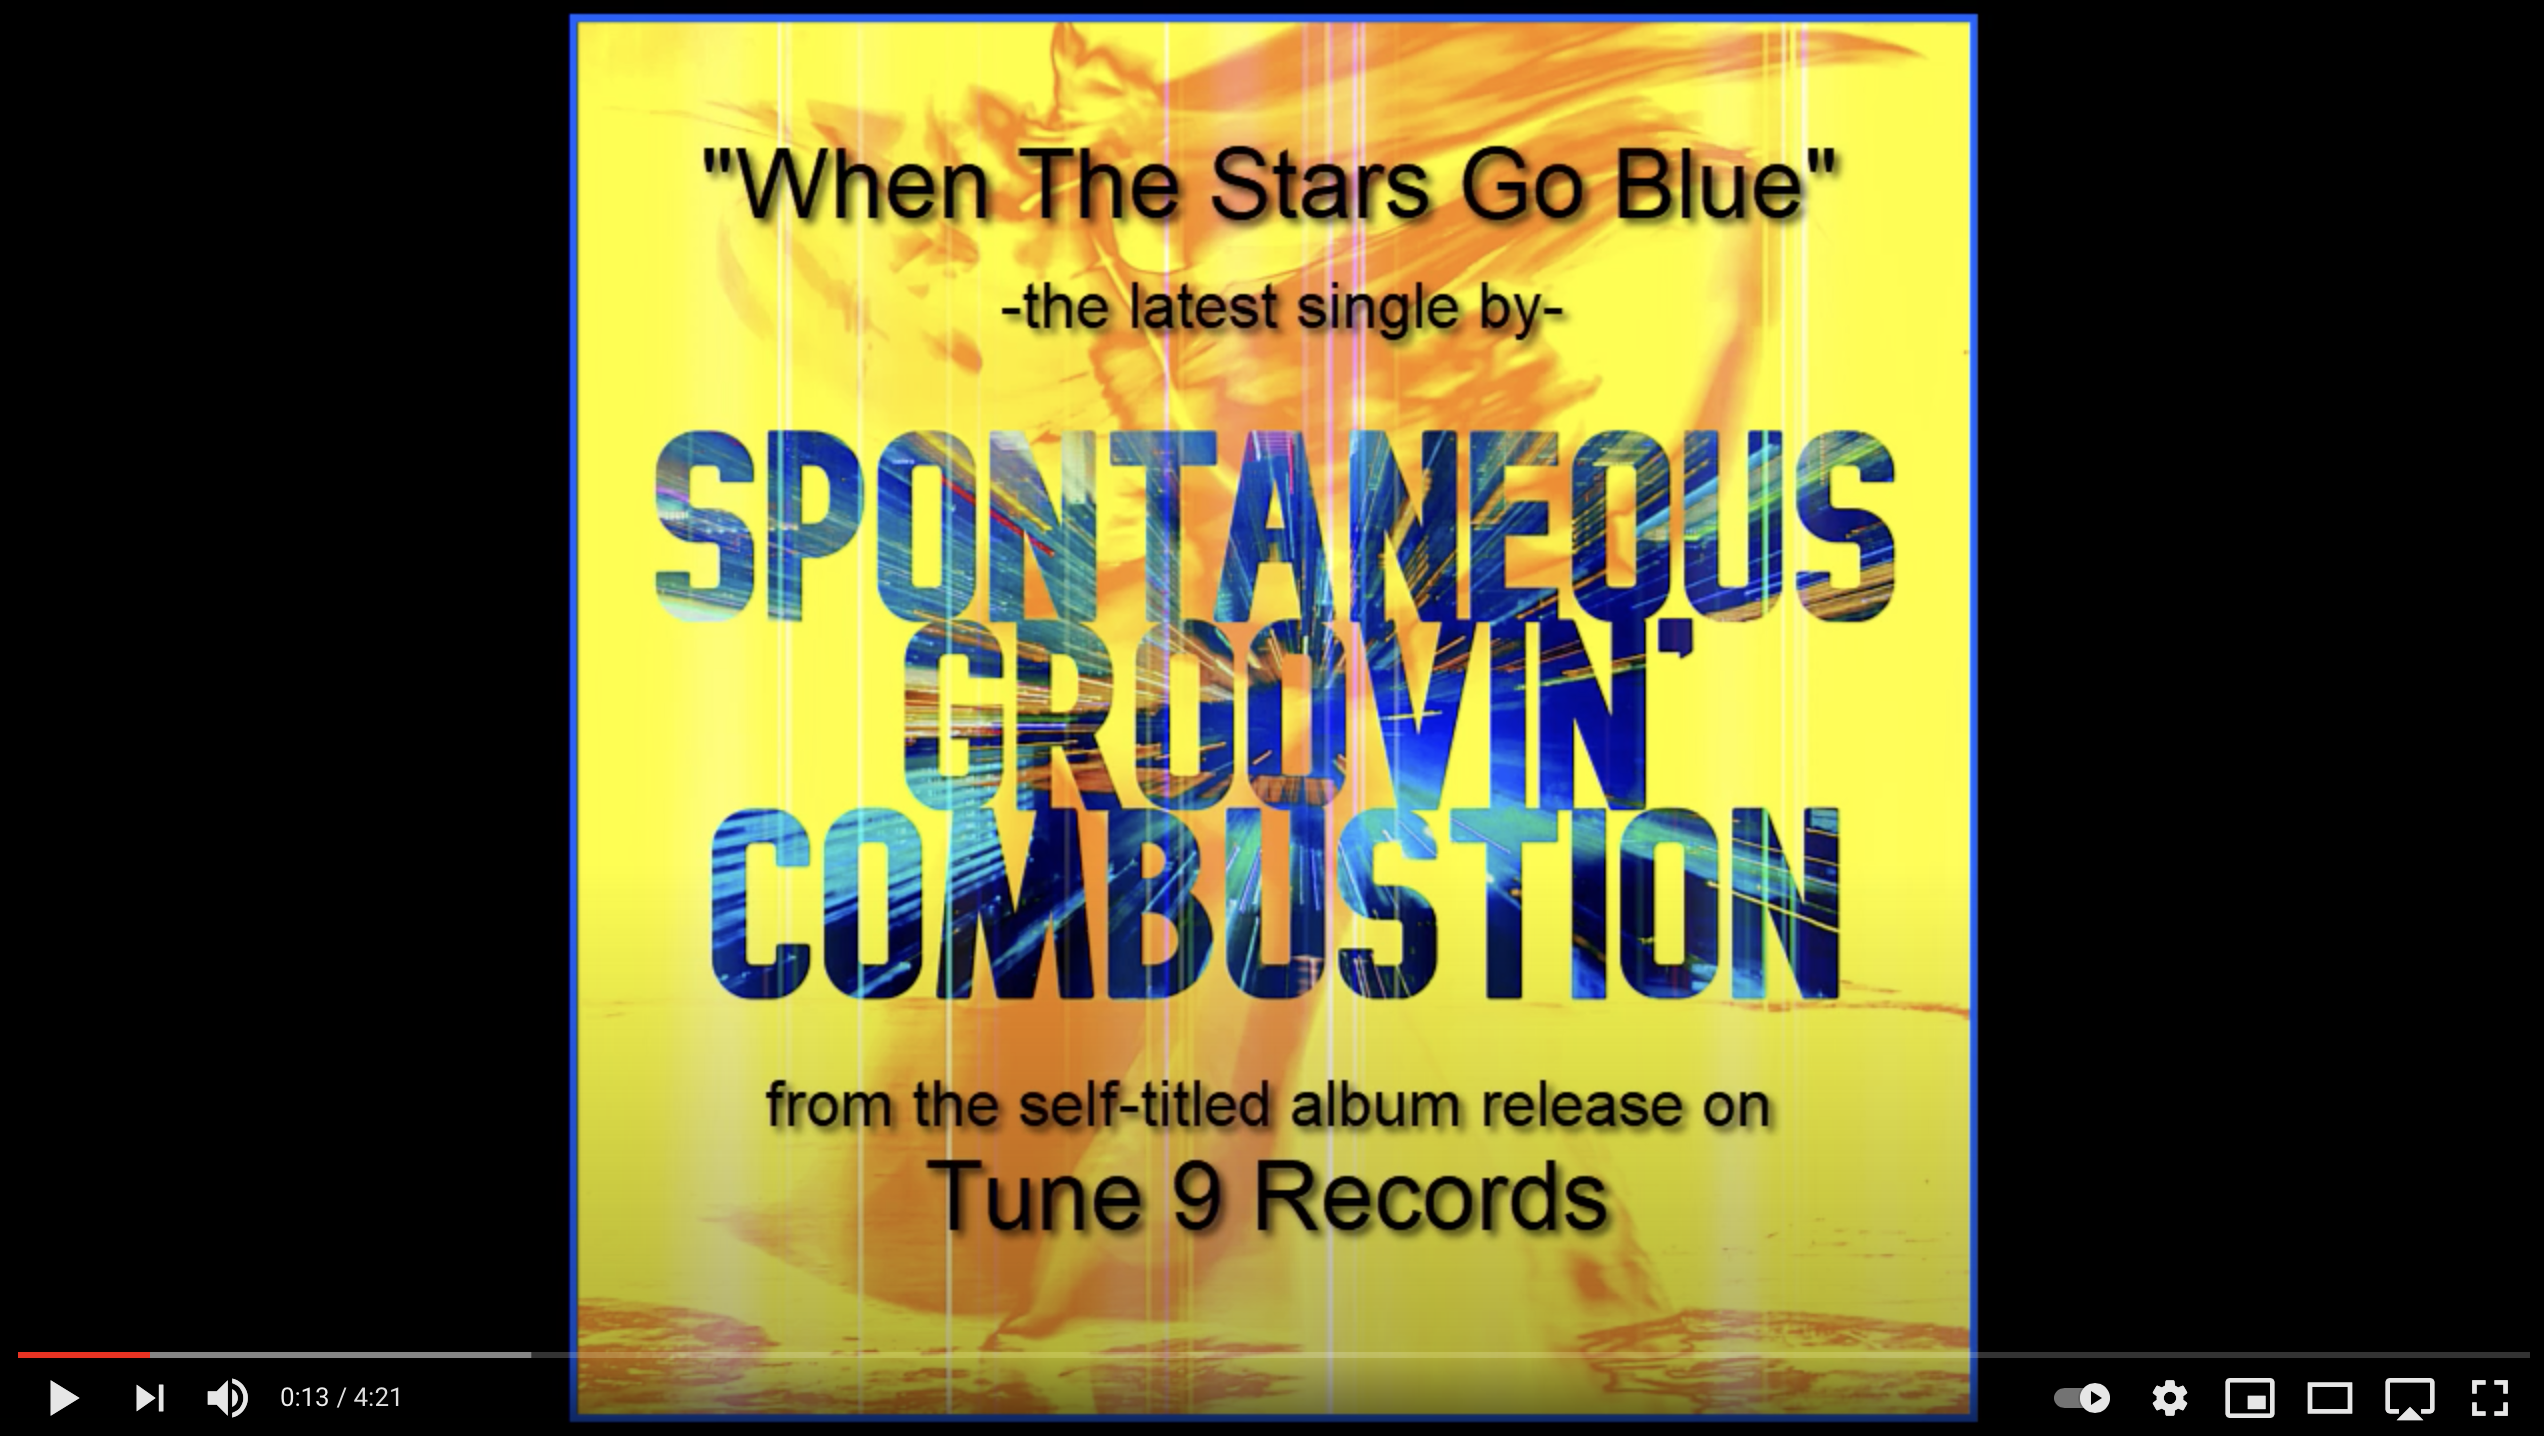 Spontaneous Groovin' Combustion - When The Stars Go Blue